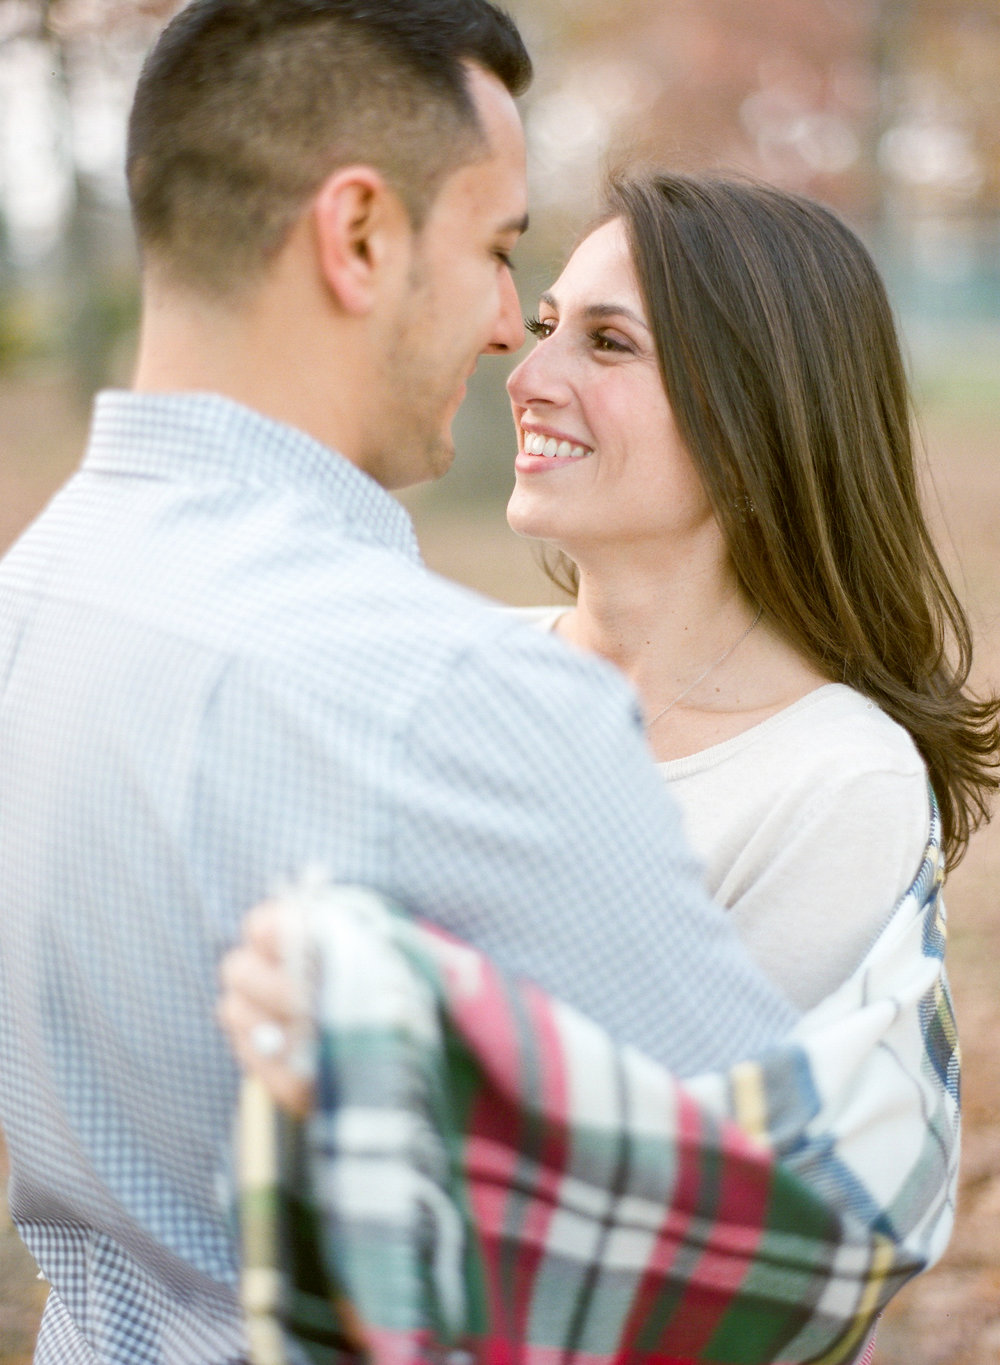 love&lightphotographs_christina&paul_engagement_film-1.JPG